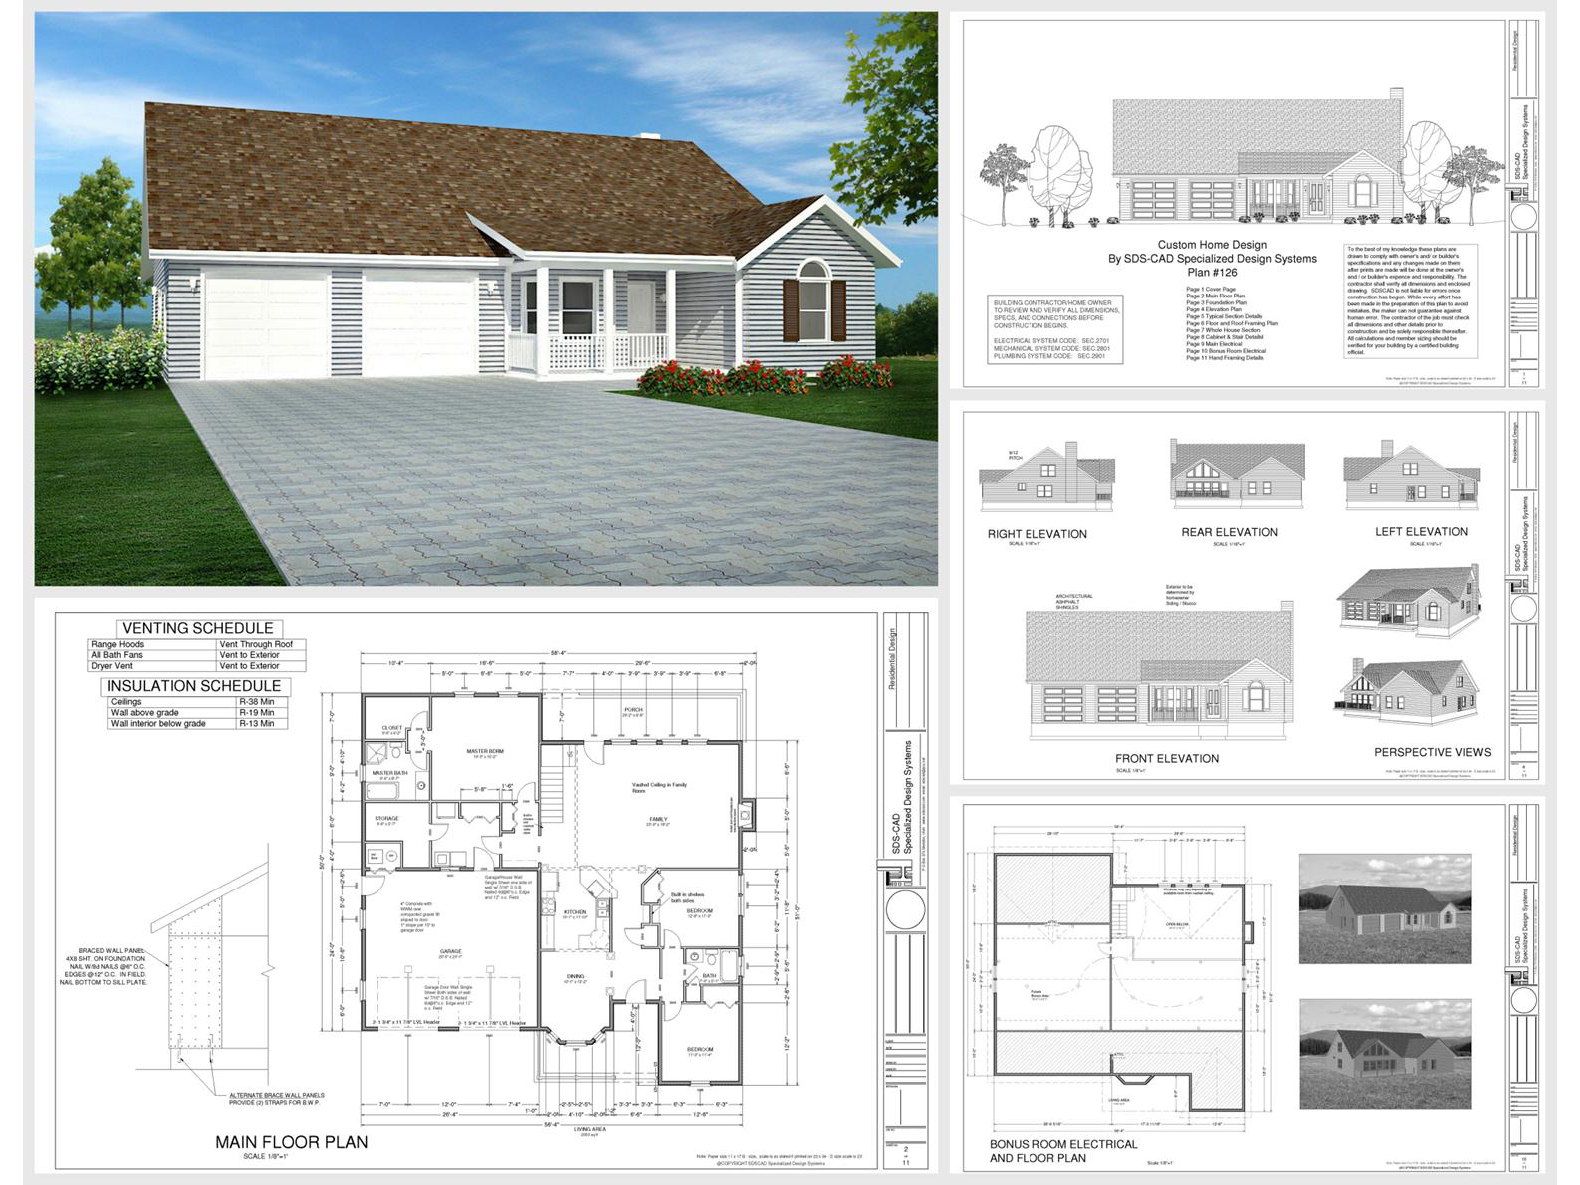 100 house plans catalog page 030 9 plans for House plan catalogs free